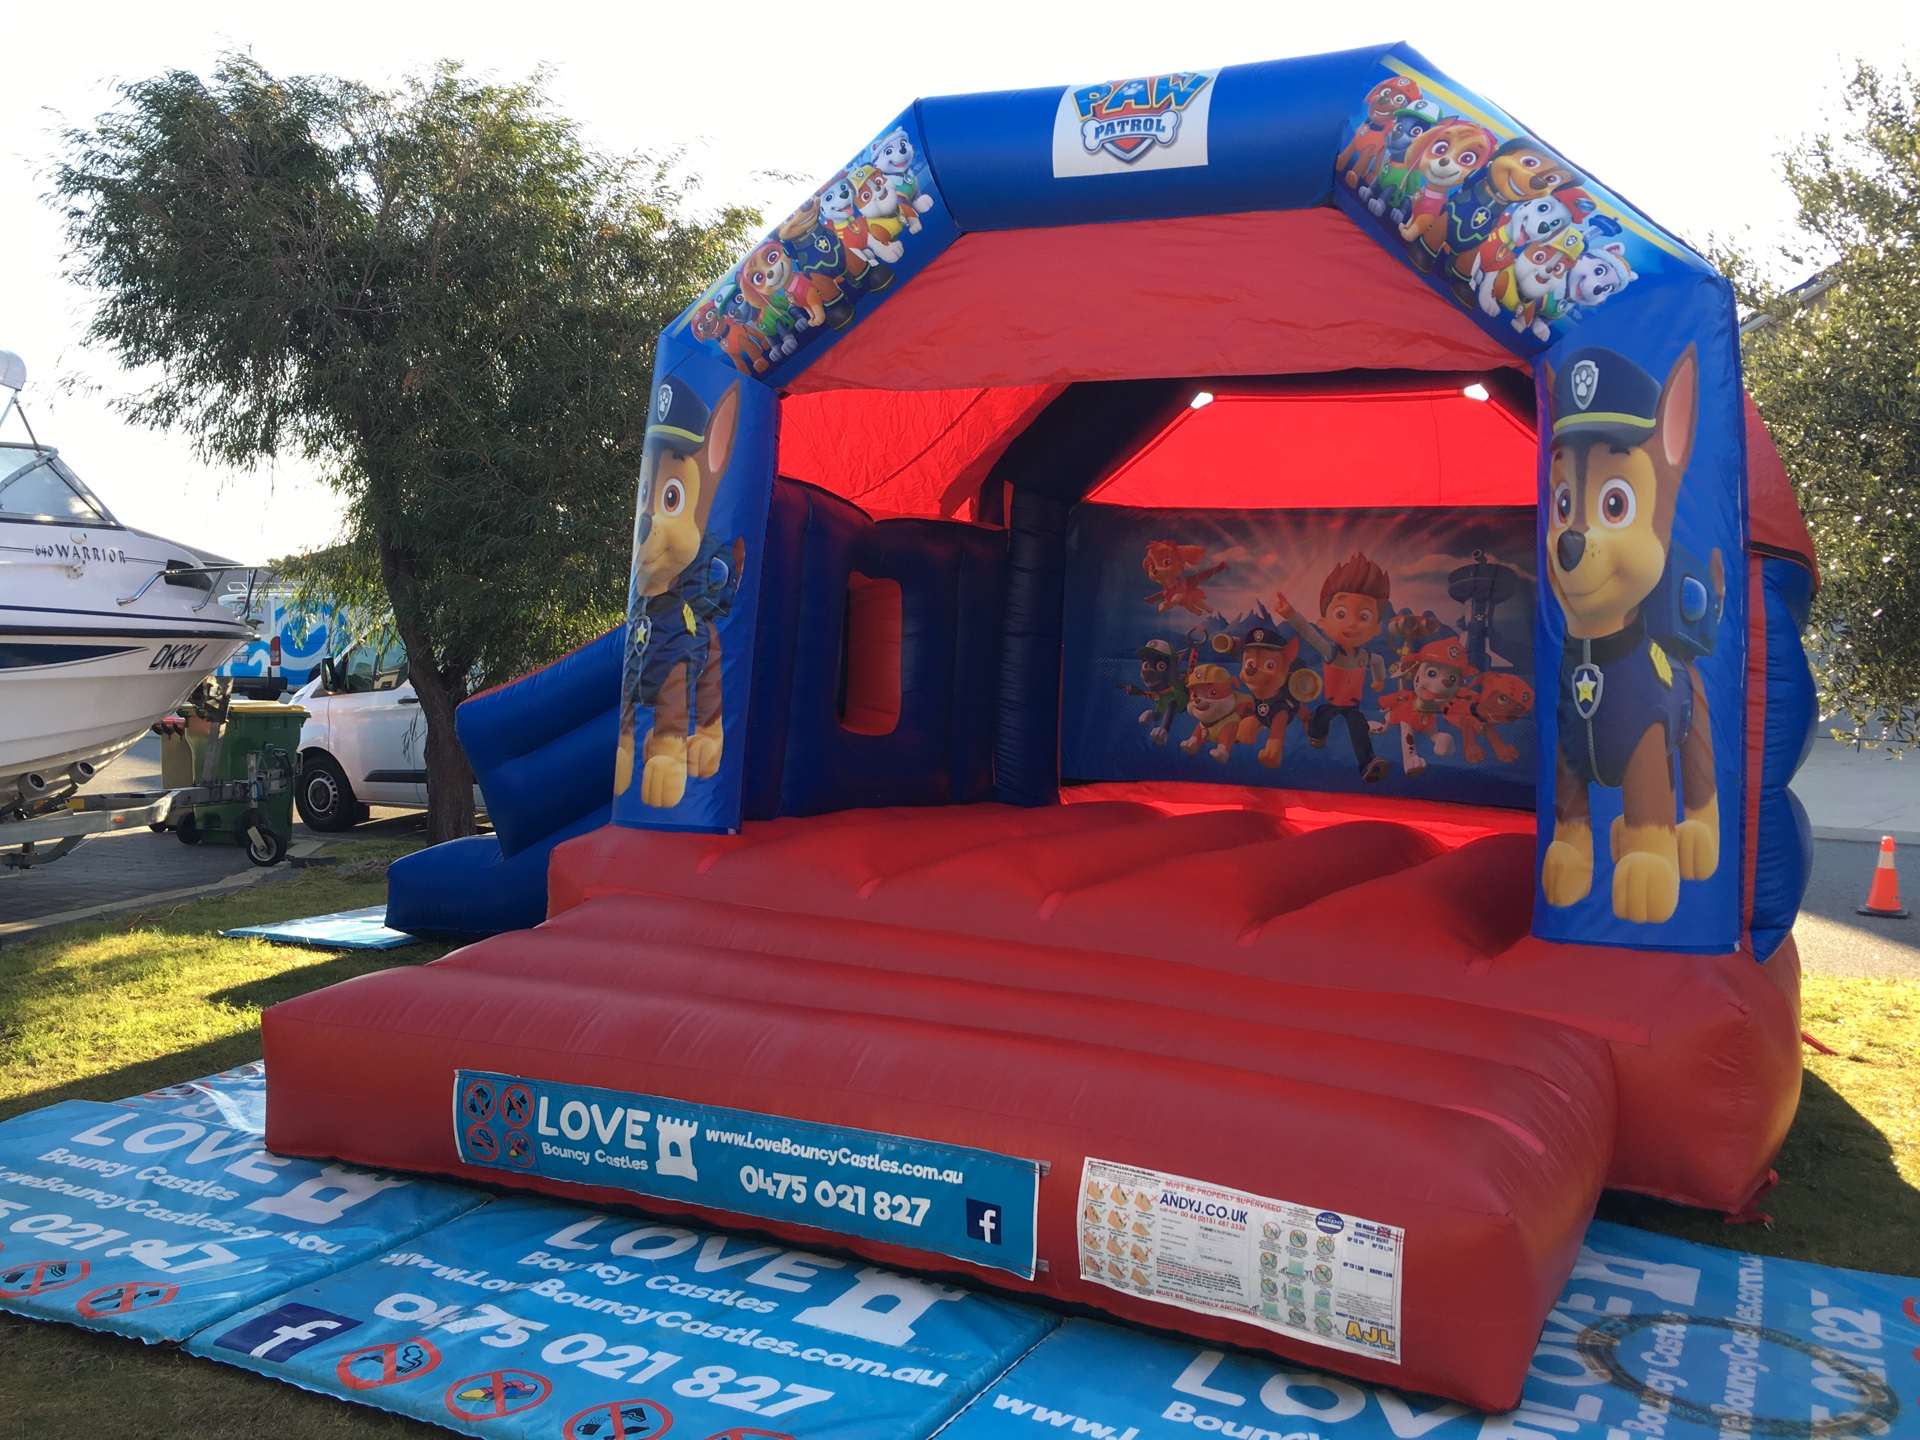 Copy of Paw Patrol Combo Jumping Castle Hire Perth, WA